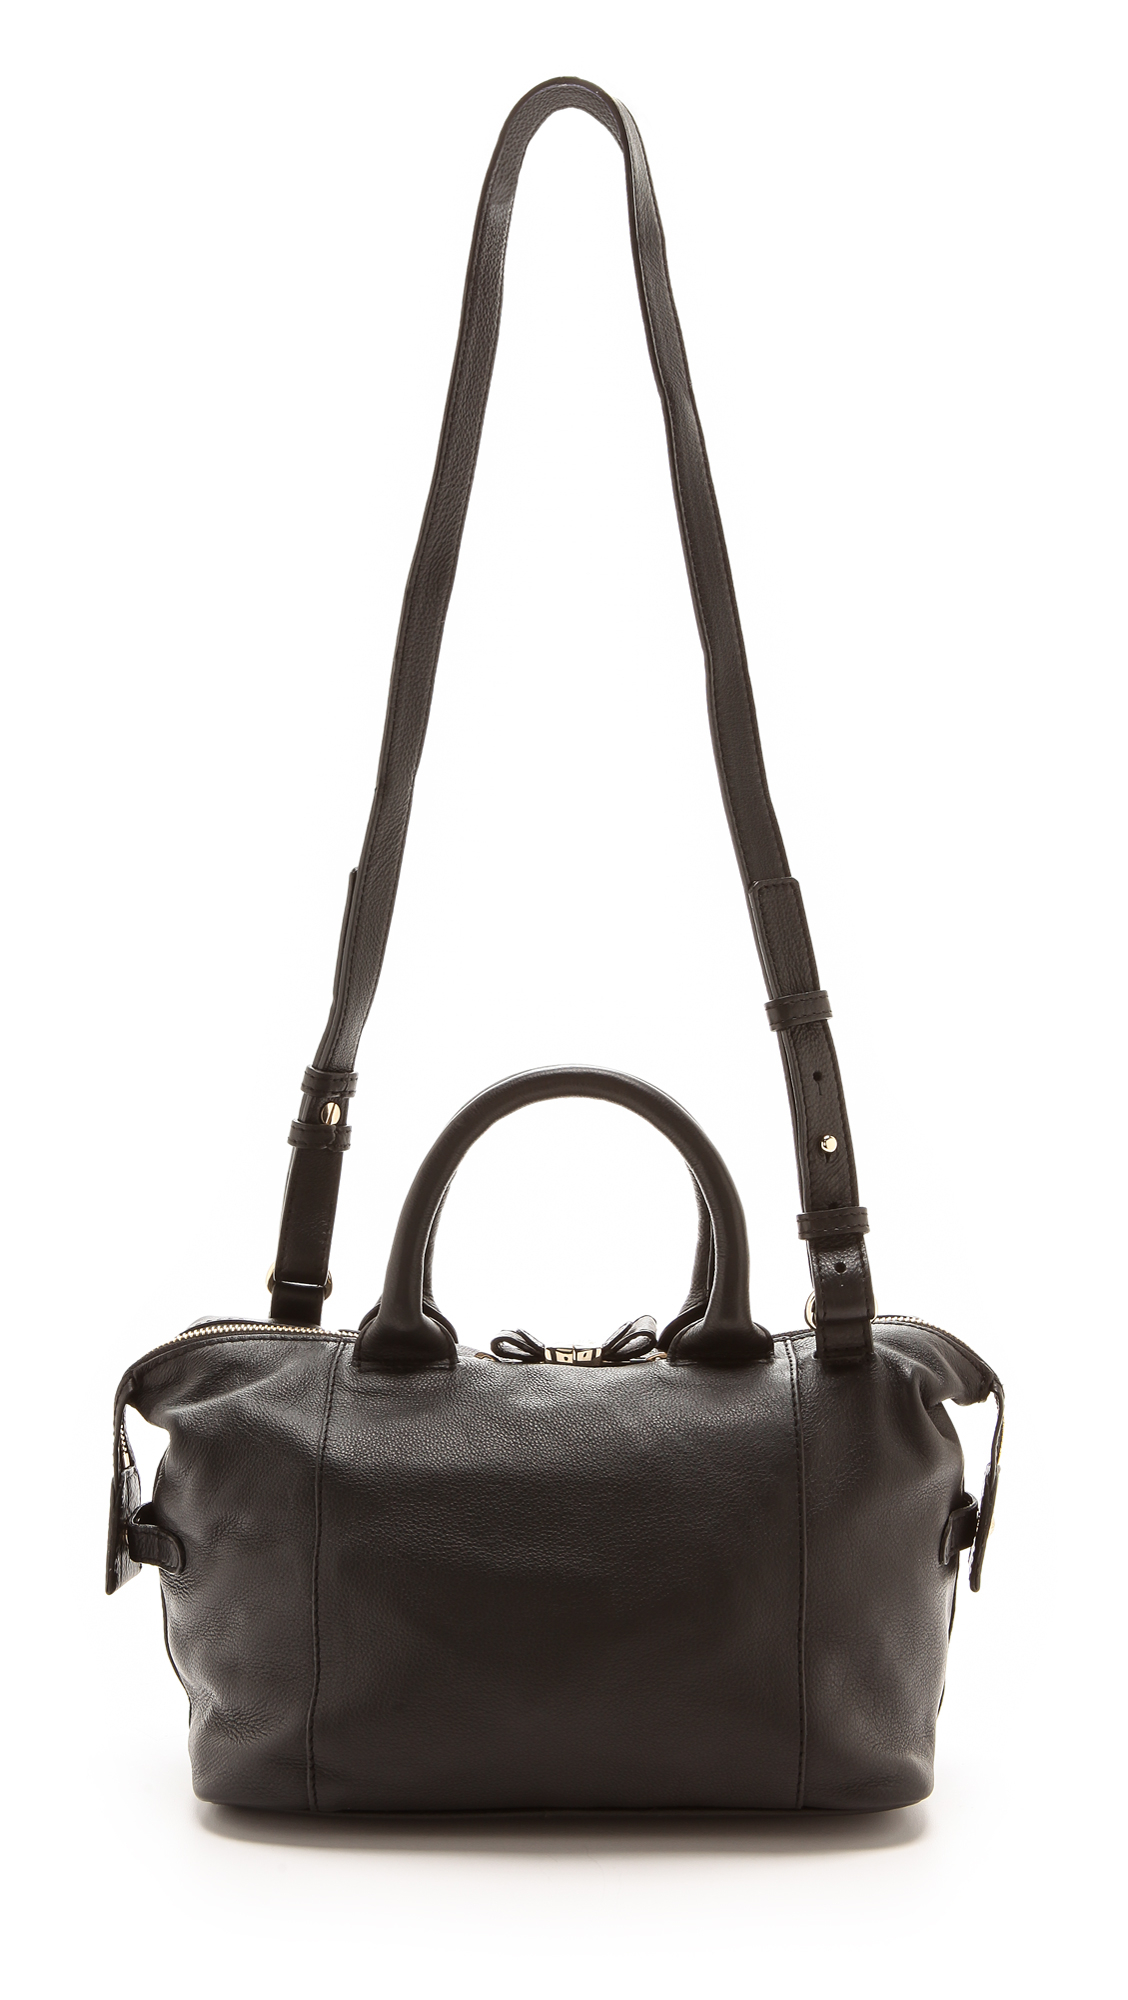 9b49bcd3cca2 See by chloé Kay Handbag Stone in Black